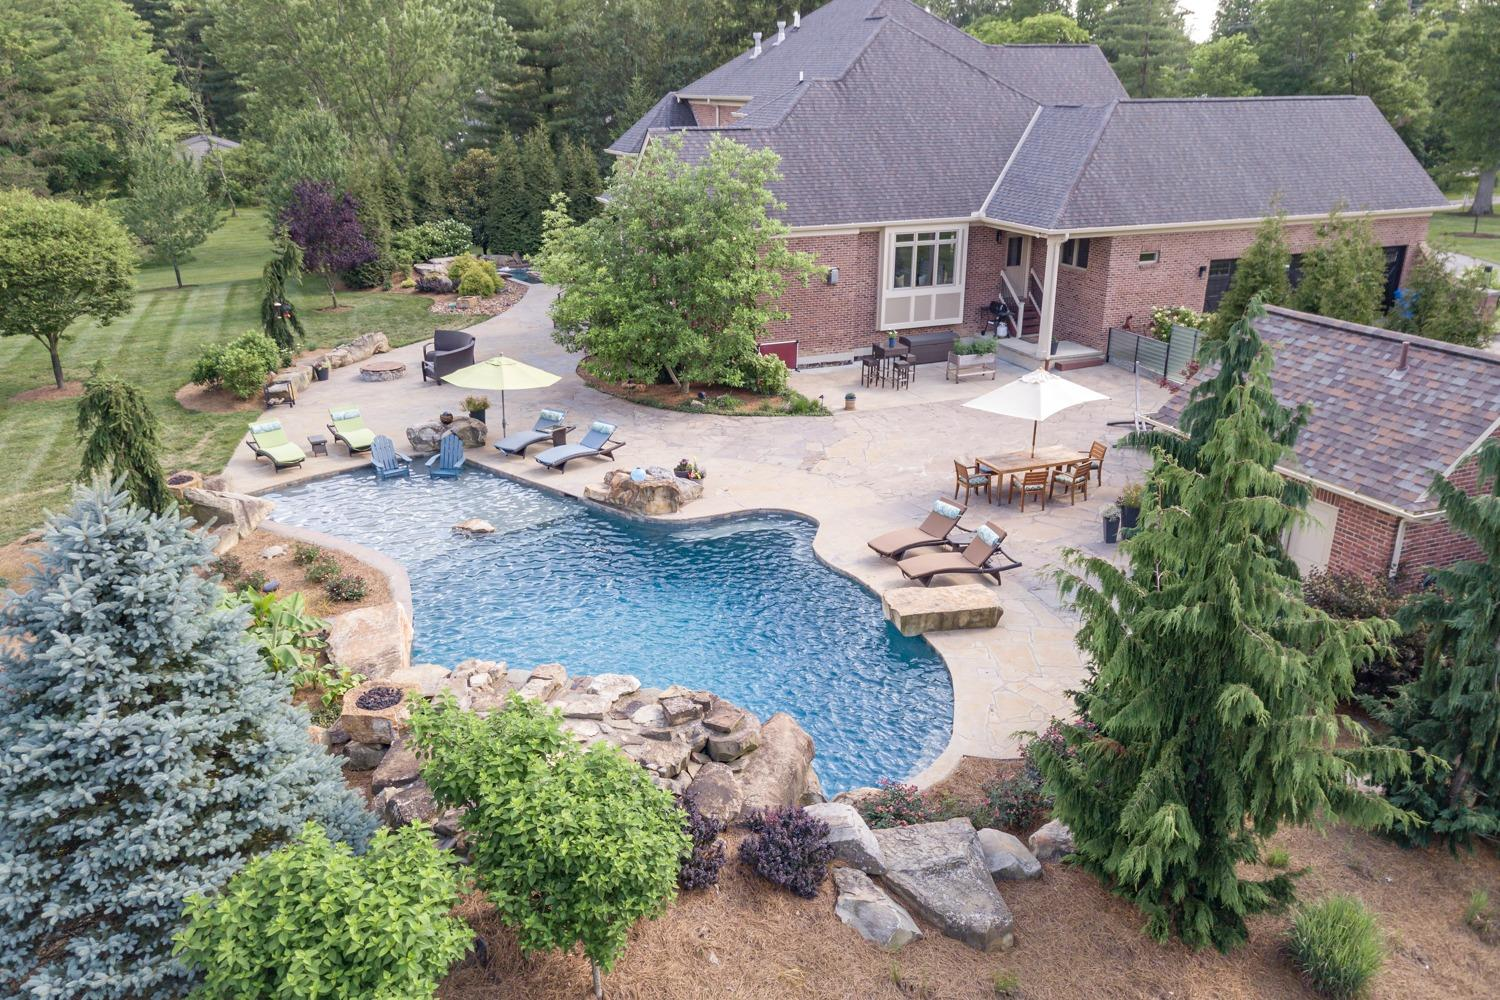 Blue spruce, berberis, and weeping cedars provide year round interest to the pool landscaping.